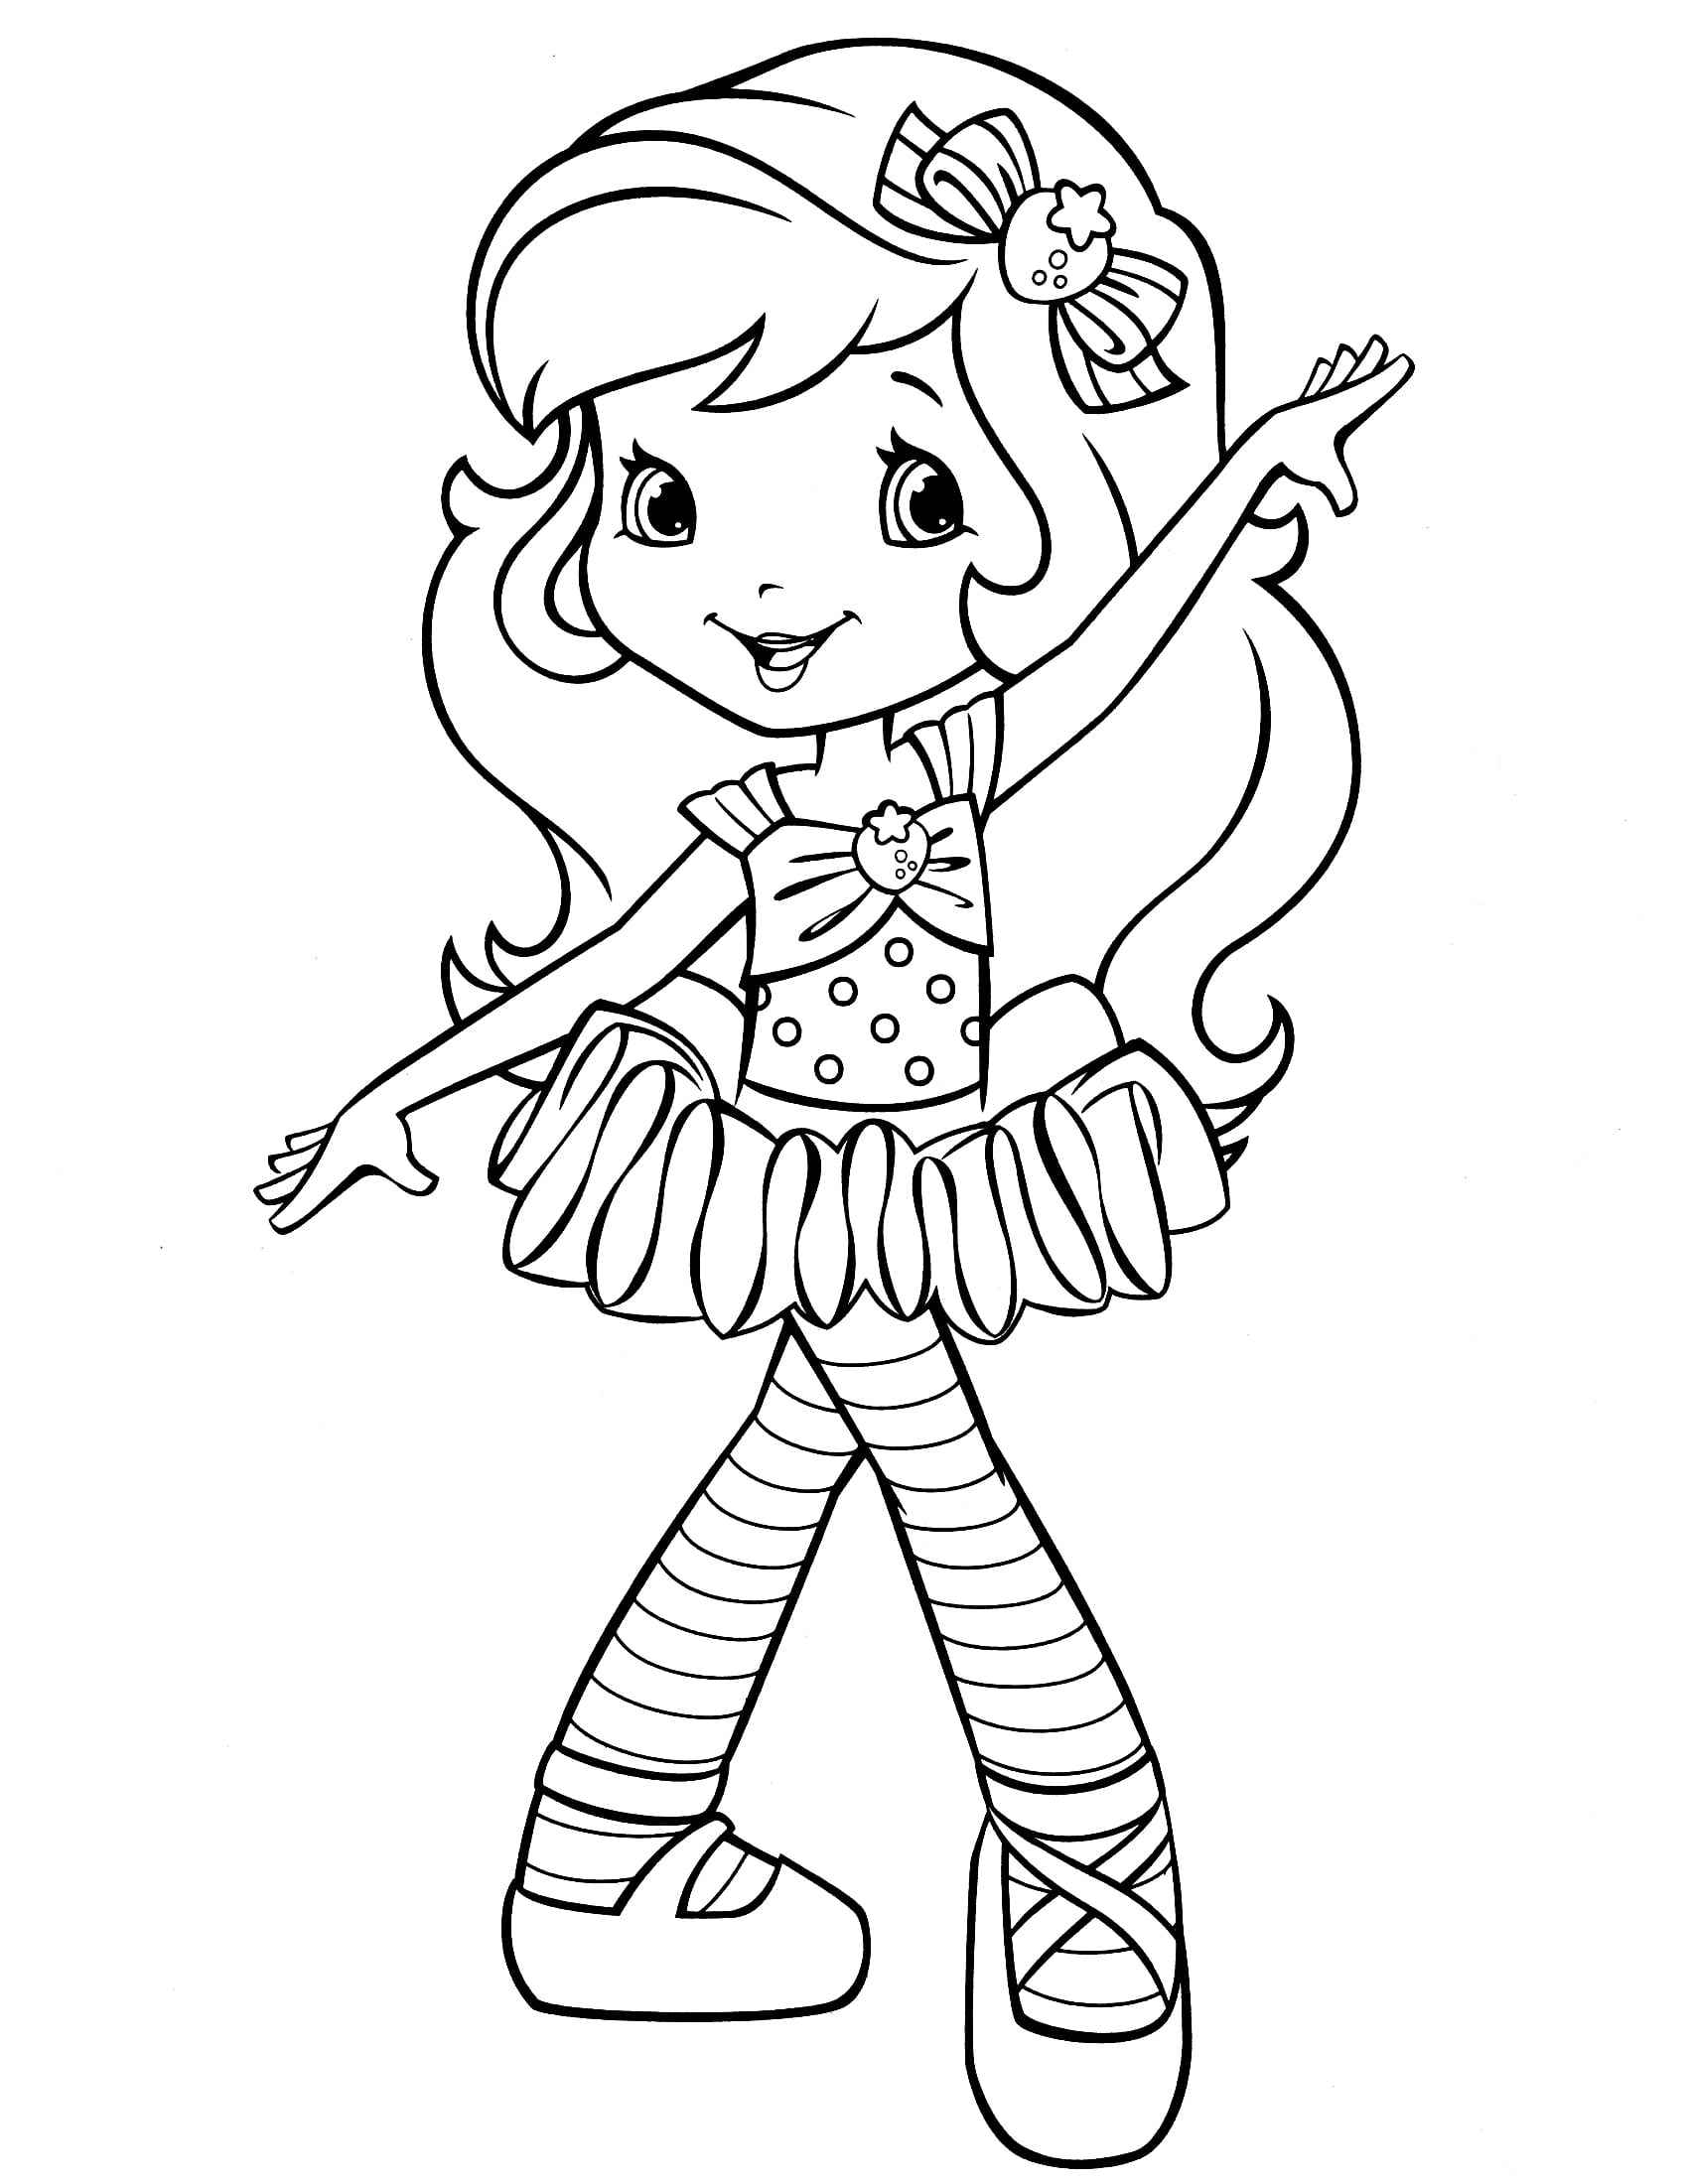 Strawberry Shortcake Coloring Page With Wallpaper Hd Background